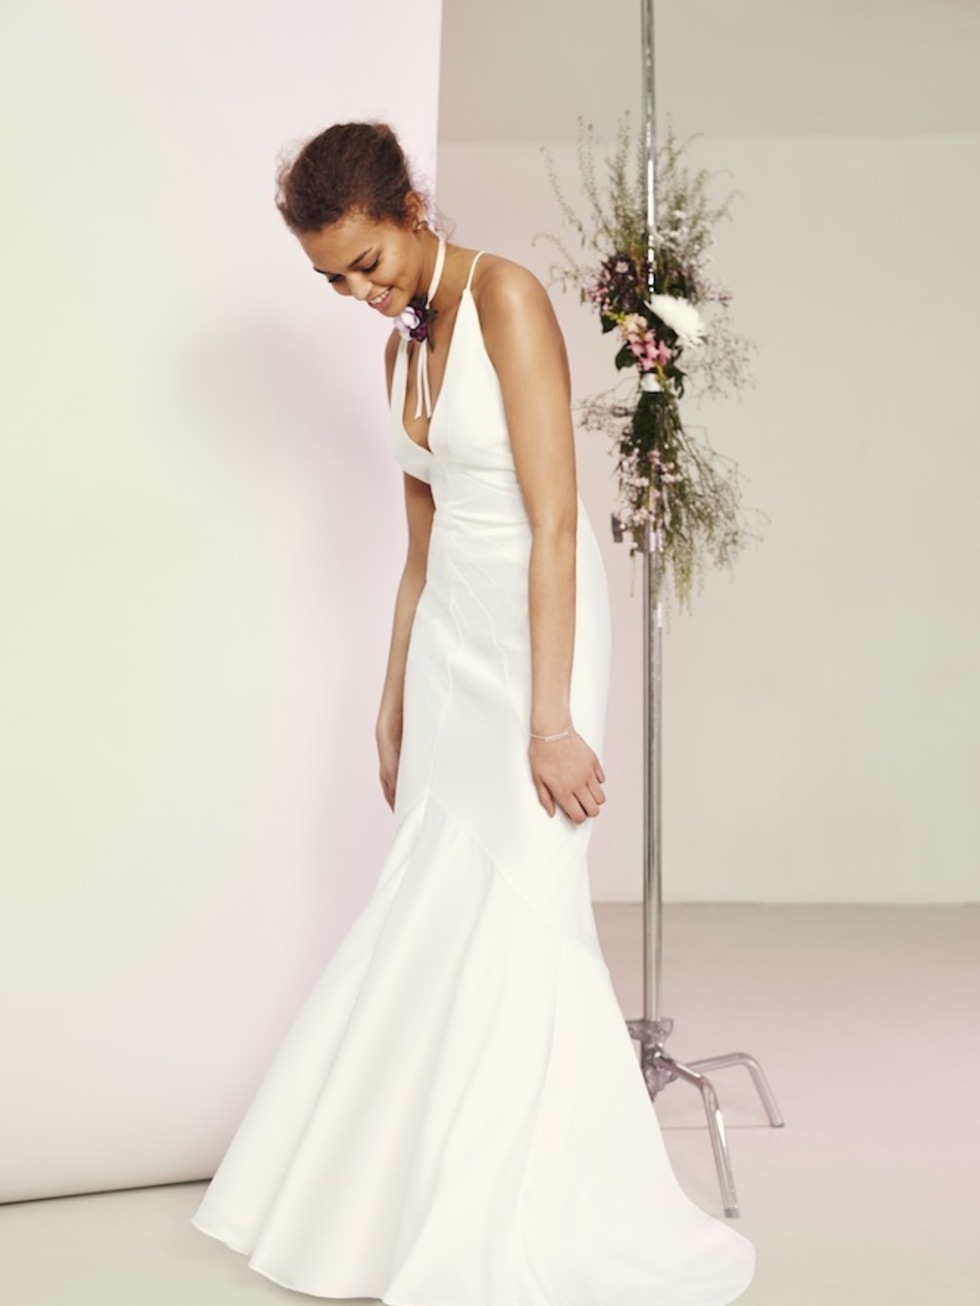 ASOS Bridal Is Finally Here